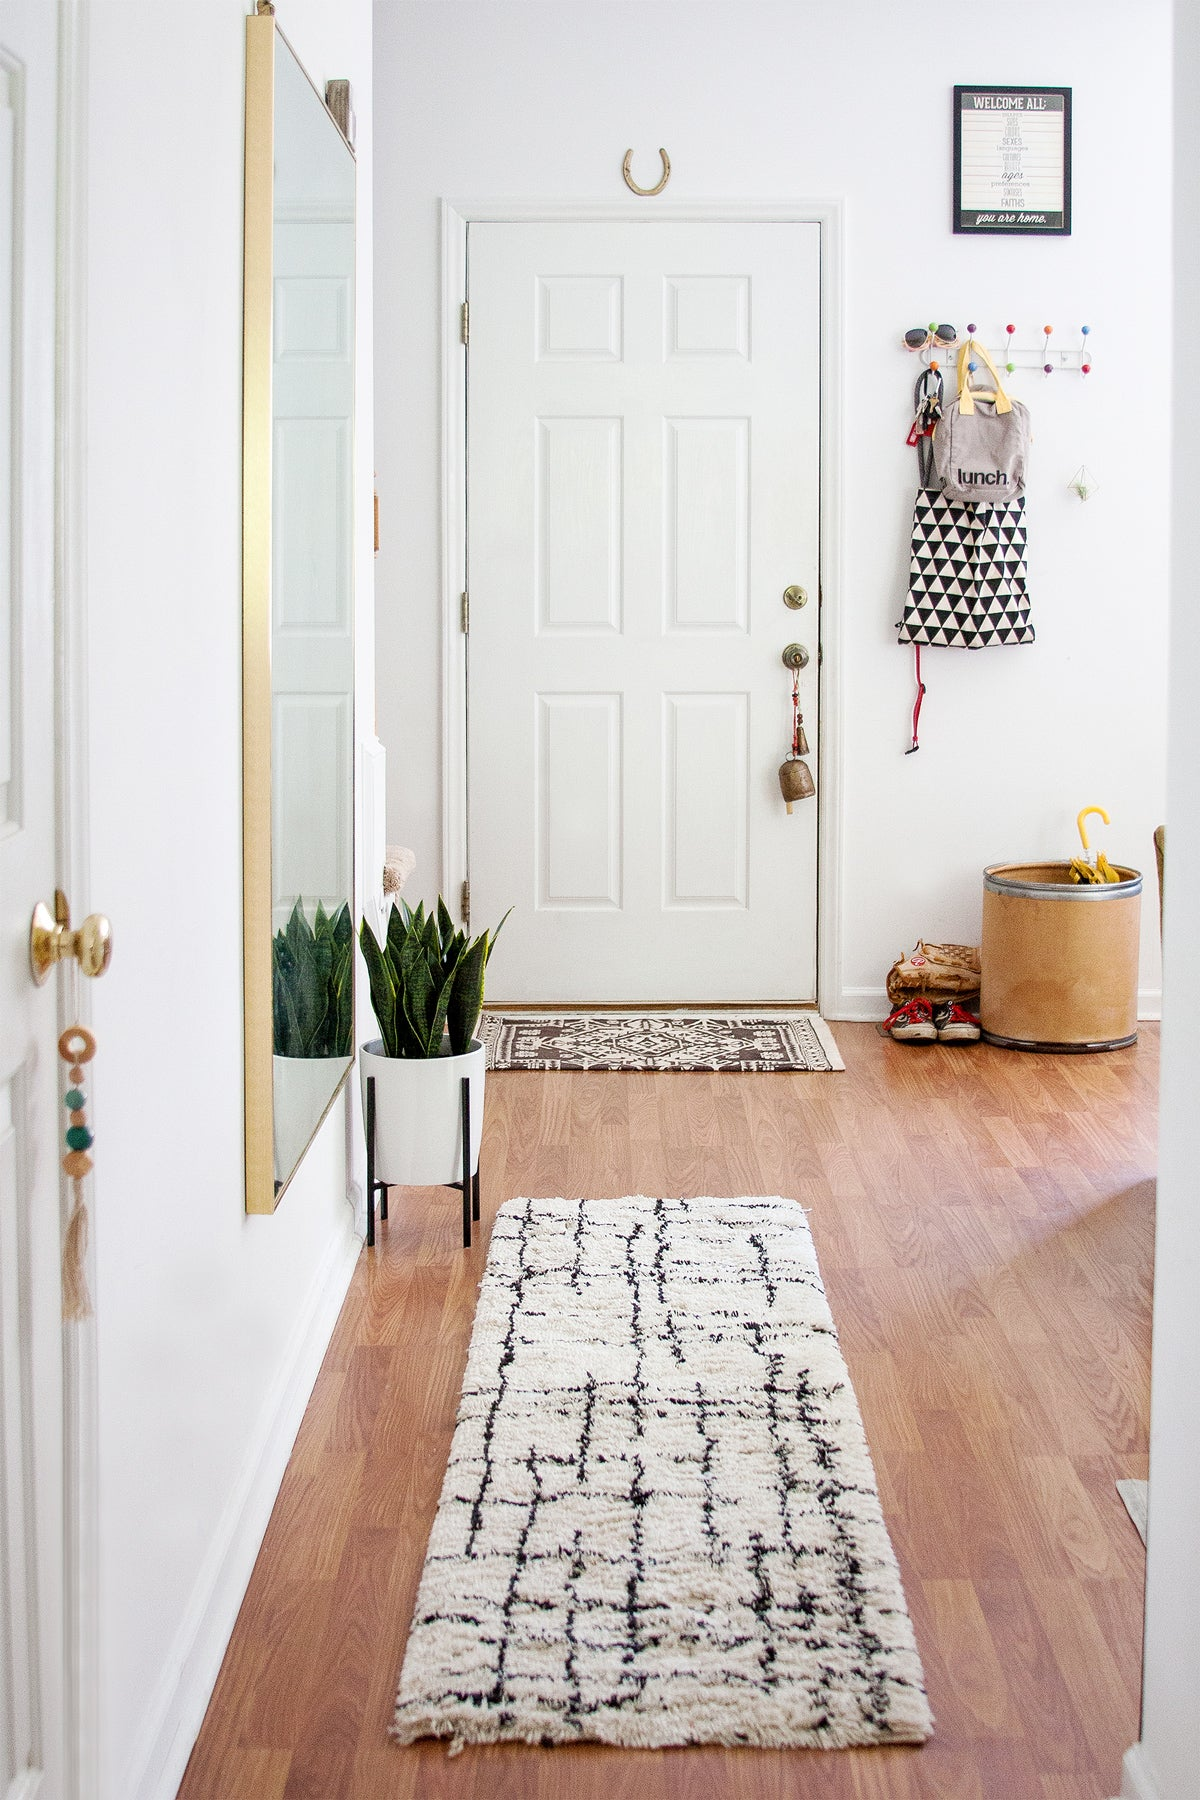 White foyer with moroccan rug and snake plant in an art deco inspired pot